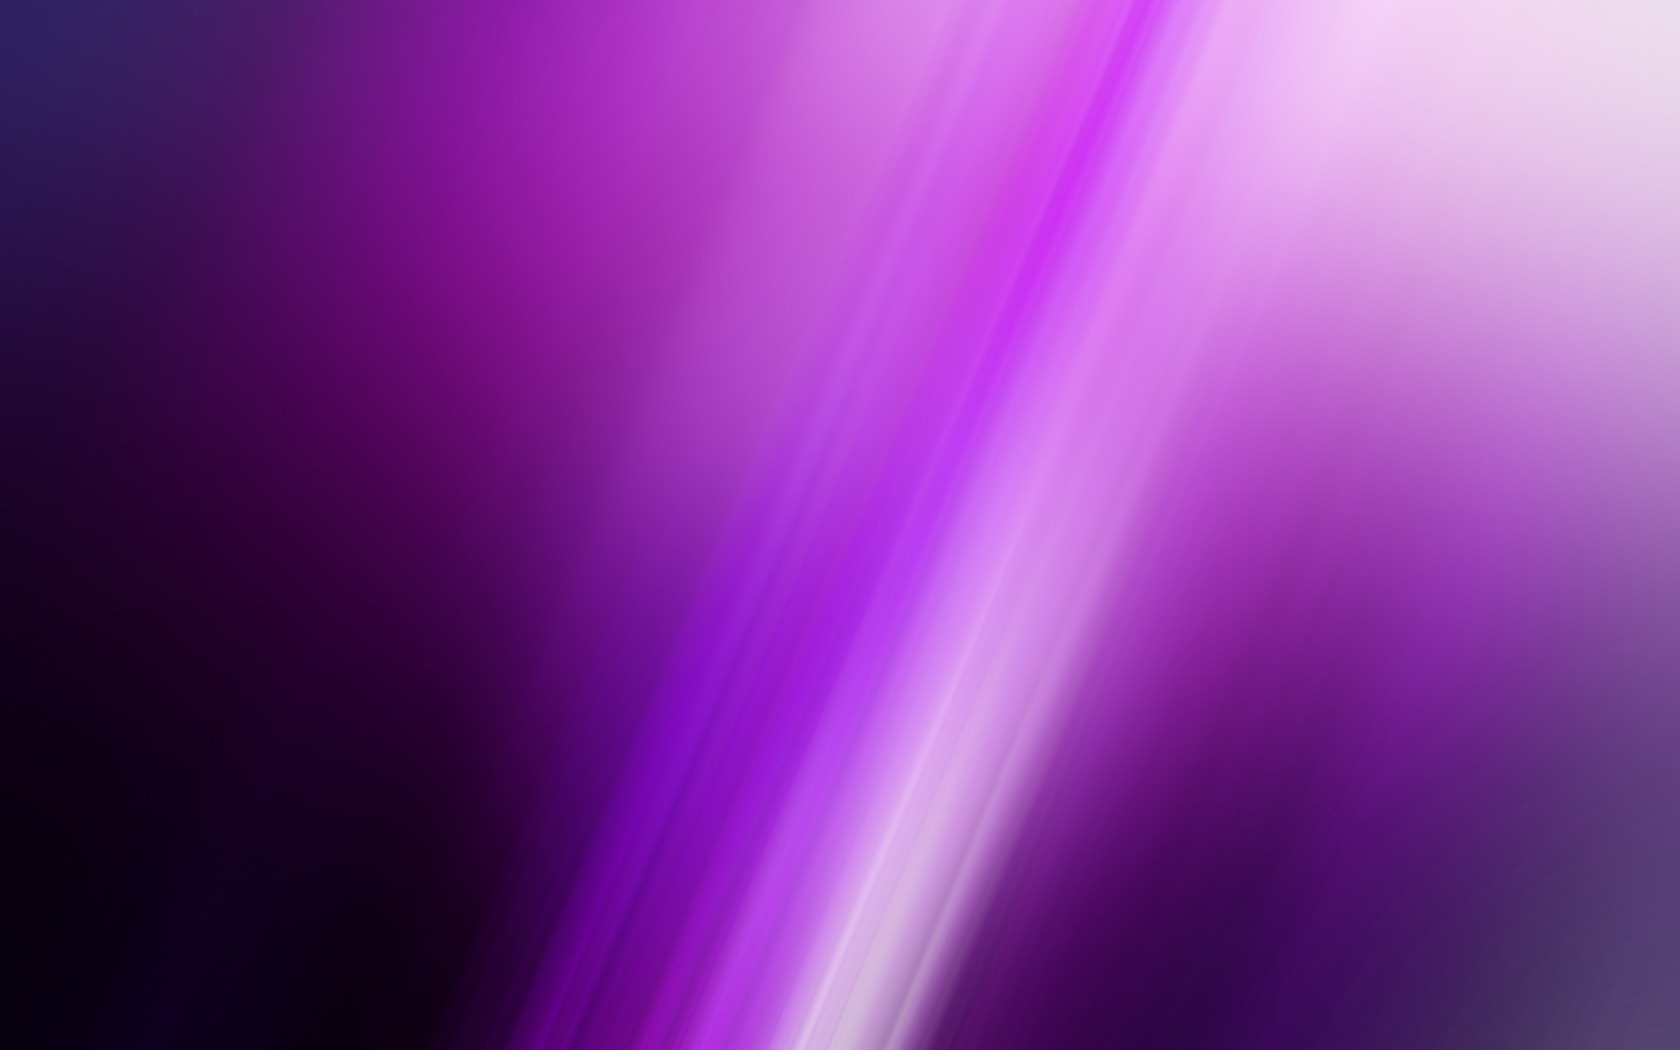 Lovely Purple Abstract 27693 1680x1050 px